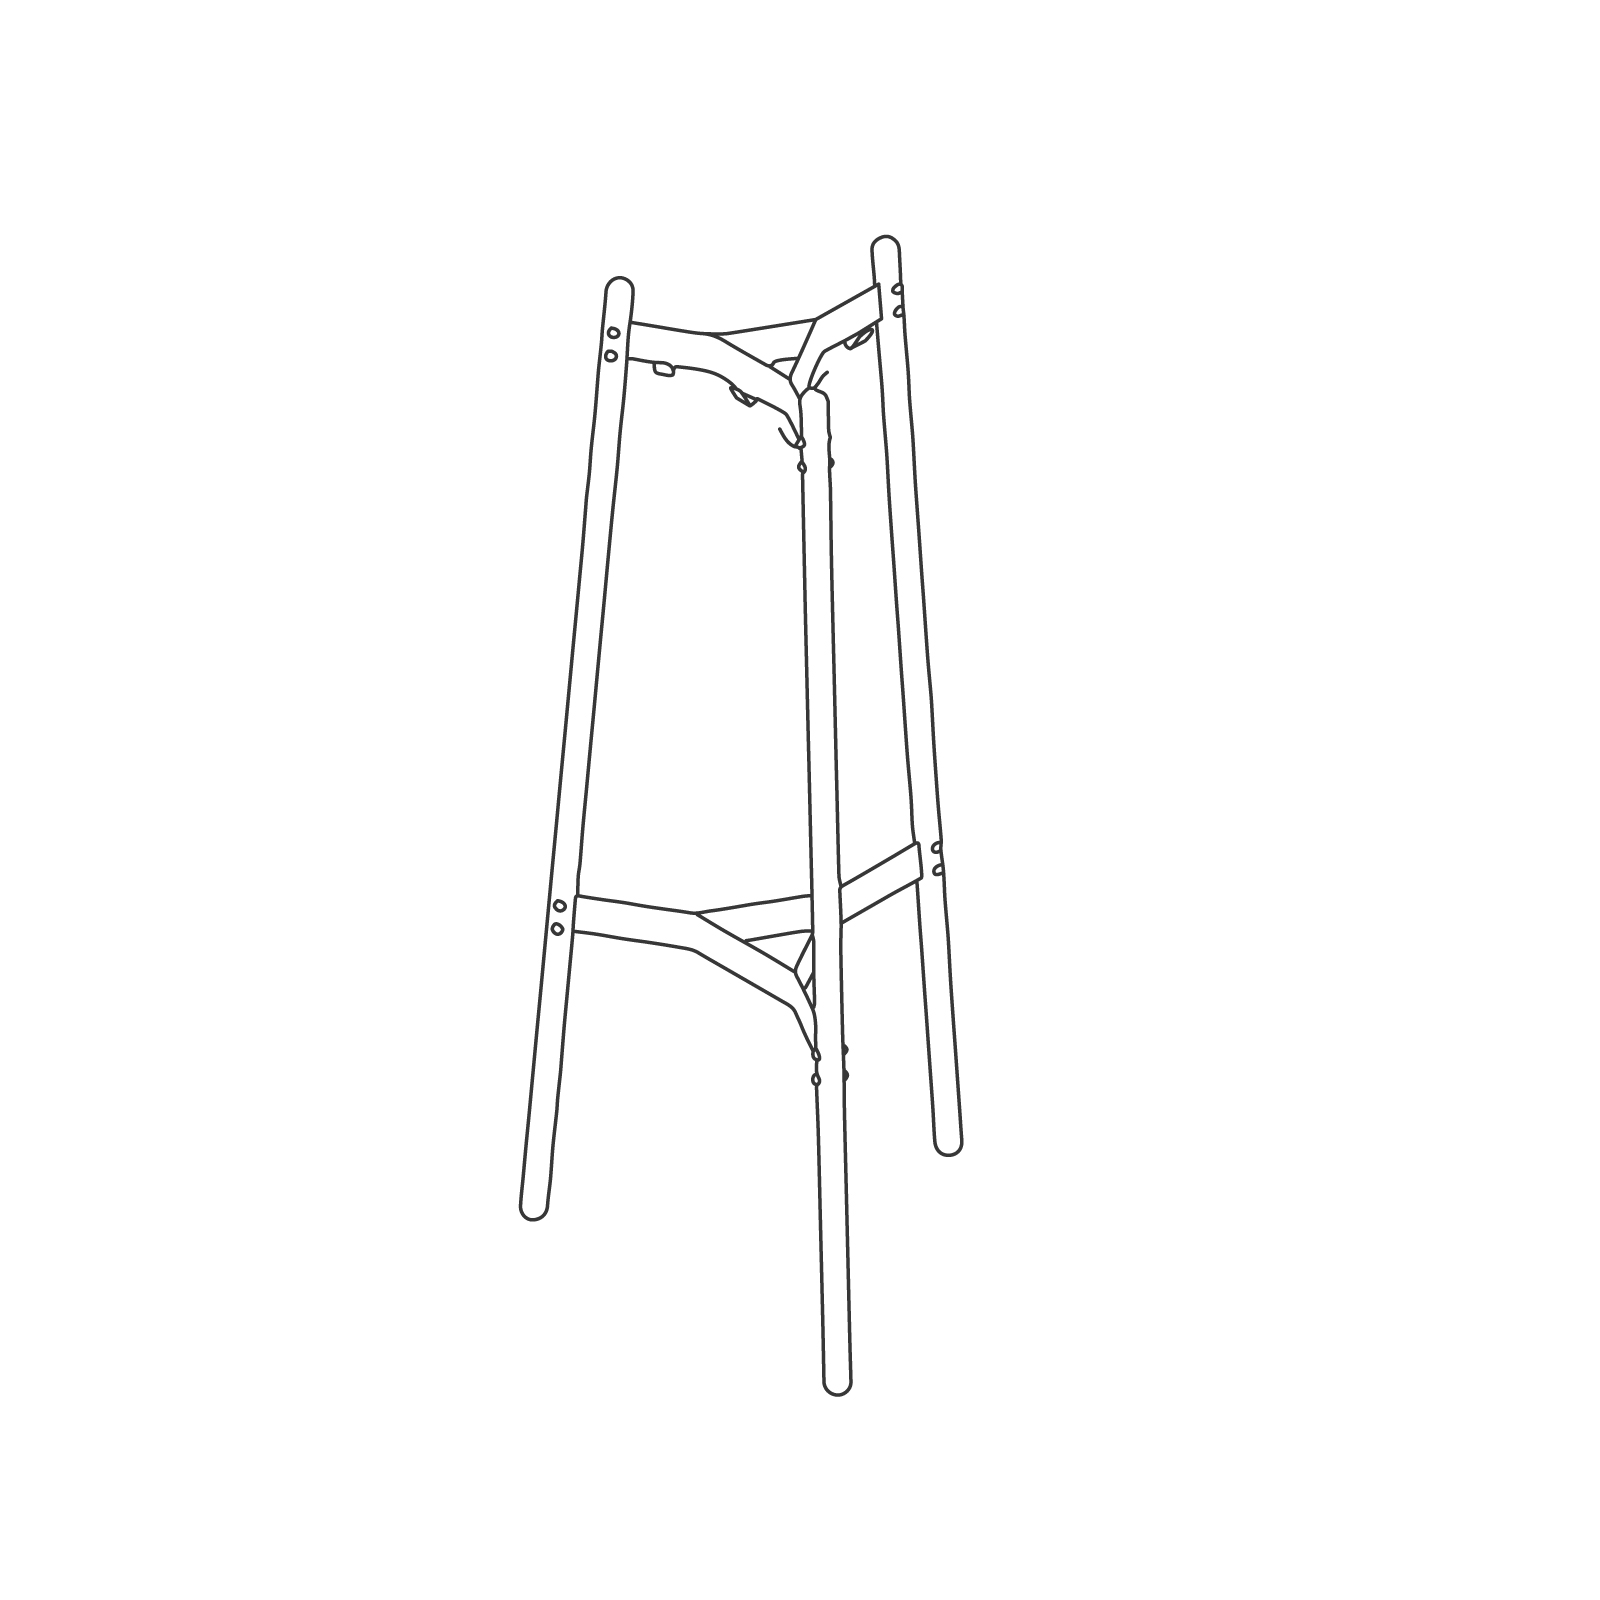 A line drawing - Hudson Coat Stand